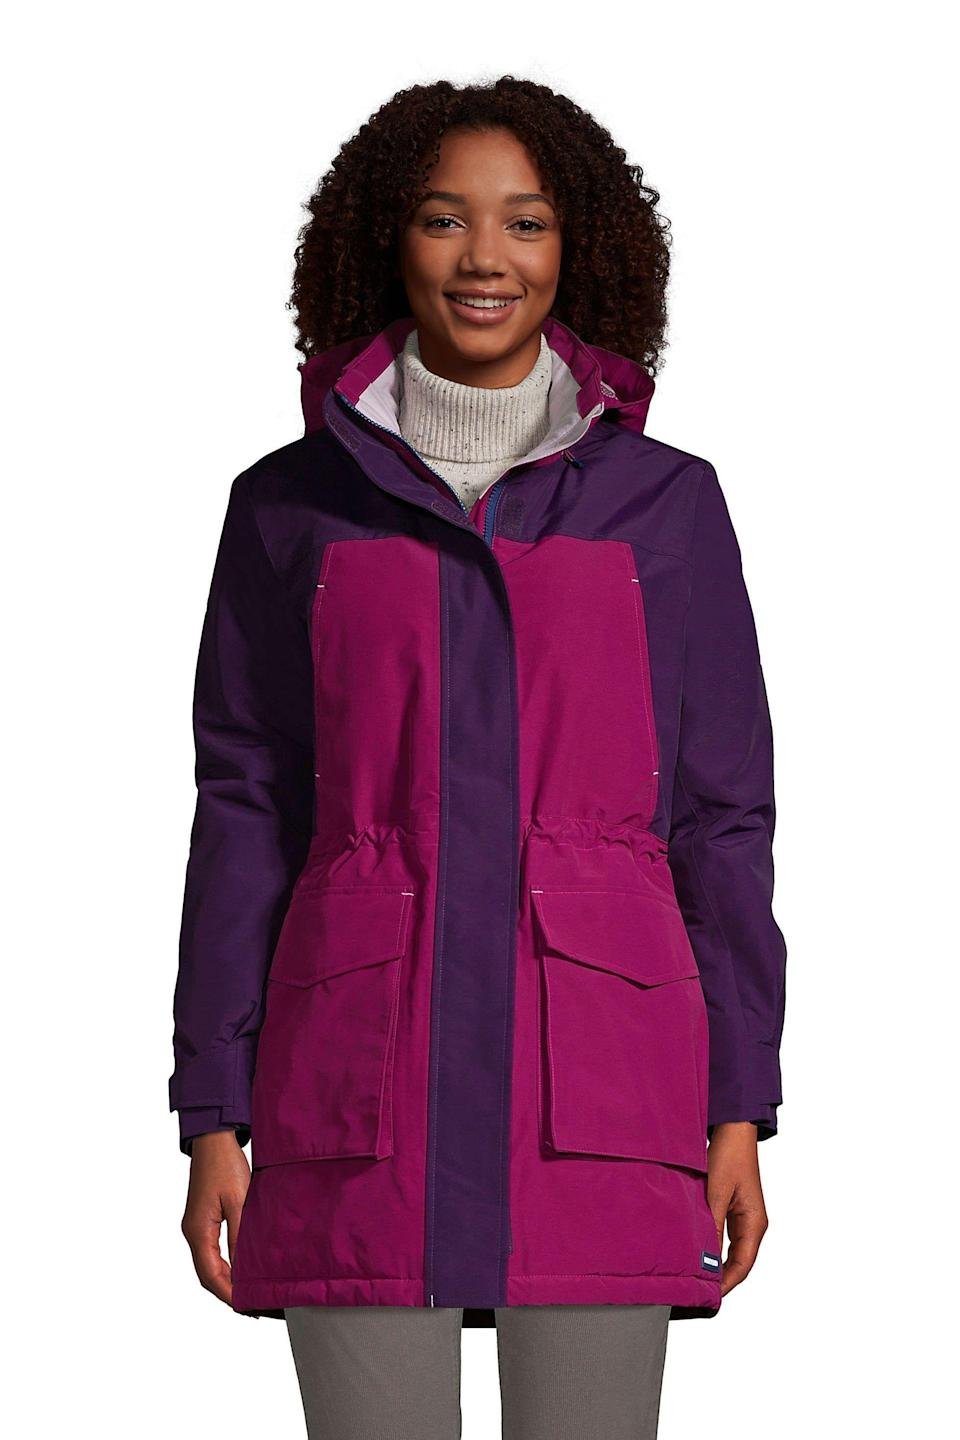 """<p><strong>Lands' End</strong></p><p>landsend.com</p><p><strong>$179.95</strong></p><p><a href=""""https://go.redirectingat.com?id=74968X1596630&url=https%3A%2F%2Fwww.landsend.com%2Fproducts%2Fwomens-squall-insulated-waterproof-winter-parka-coat-with-hood%2Fid_349442&sref=https%3A%2F%2Fwww.goodhousekeeping.com%2Fclothing%2Fwinter-coat-reviews%2Fg2273%2Fhighest-rated-womens-winter-coats%2F"""" rel=""""nofollow noopener"""" target=""""_blank"""" data-ylk=""""slk:Shop Now"""" class=""""link rapid-noclick-resp"""">Shop Now</a></p><p><strong>Insulation:</strong> Synthetic fill, fleece lining<strong><br></strong><strong>Best for:</strong> Extreme cold, wet conditions<br></p><p>With its impressive details to protect you against winter's elements, this nylon parka is windproof and waterproof to keep out rain, snow, ice and sleet. It's insulated and has a fleece lining to add extra warmth, but is <strong>designed to be lightweight in certain areas (like the lower body and hood)</strong> so it won't feel too heavy as you move. The two-way zipper is covered by a storm flap and there are plenty of zippered pockets to keep belongings safe.</p>"""